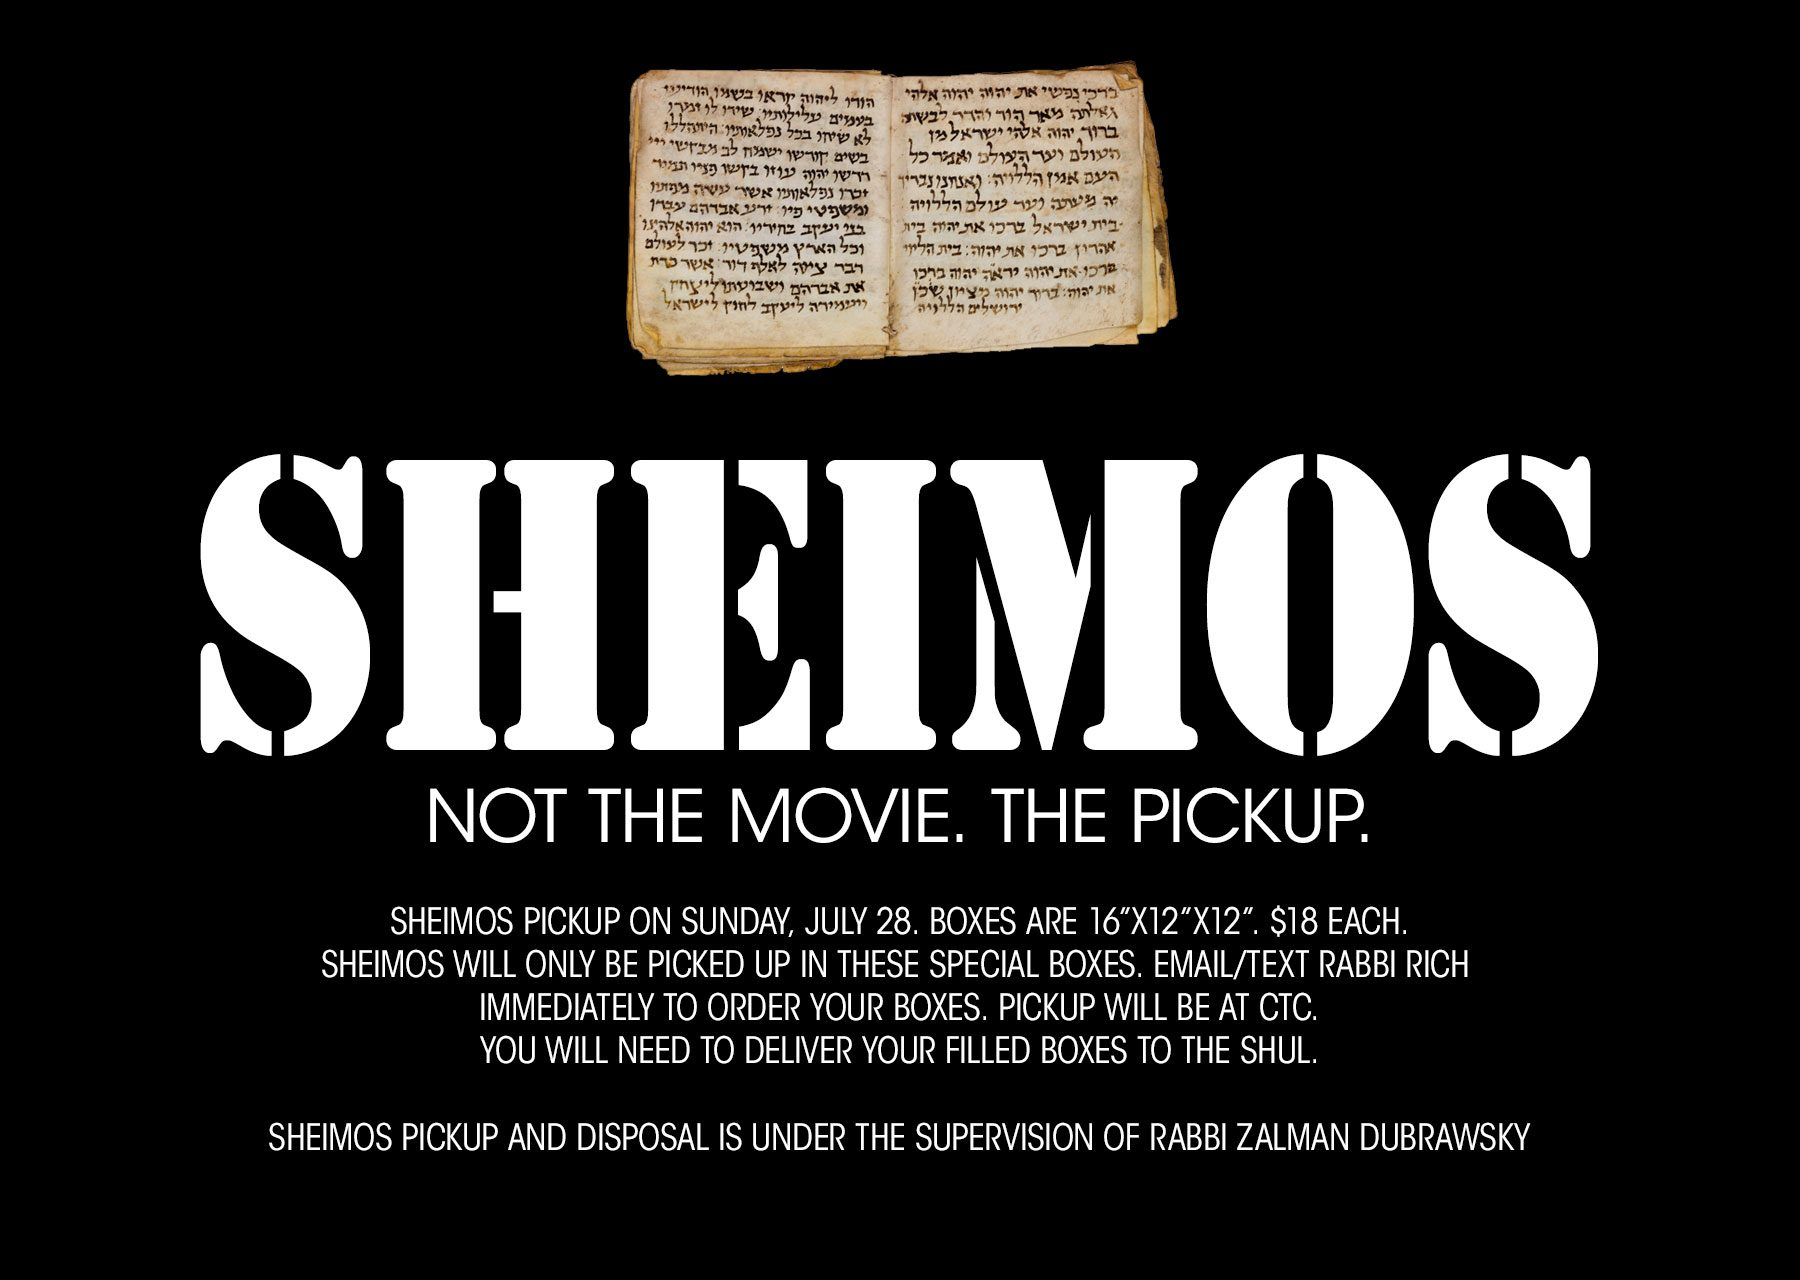 SHEIMOS: NOT THE MOVIE. THE PICKUP